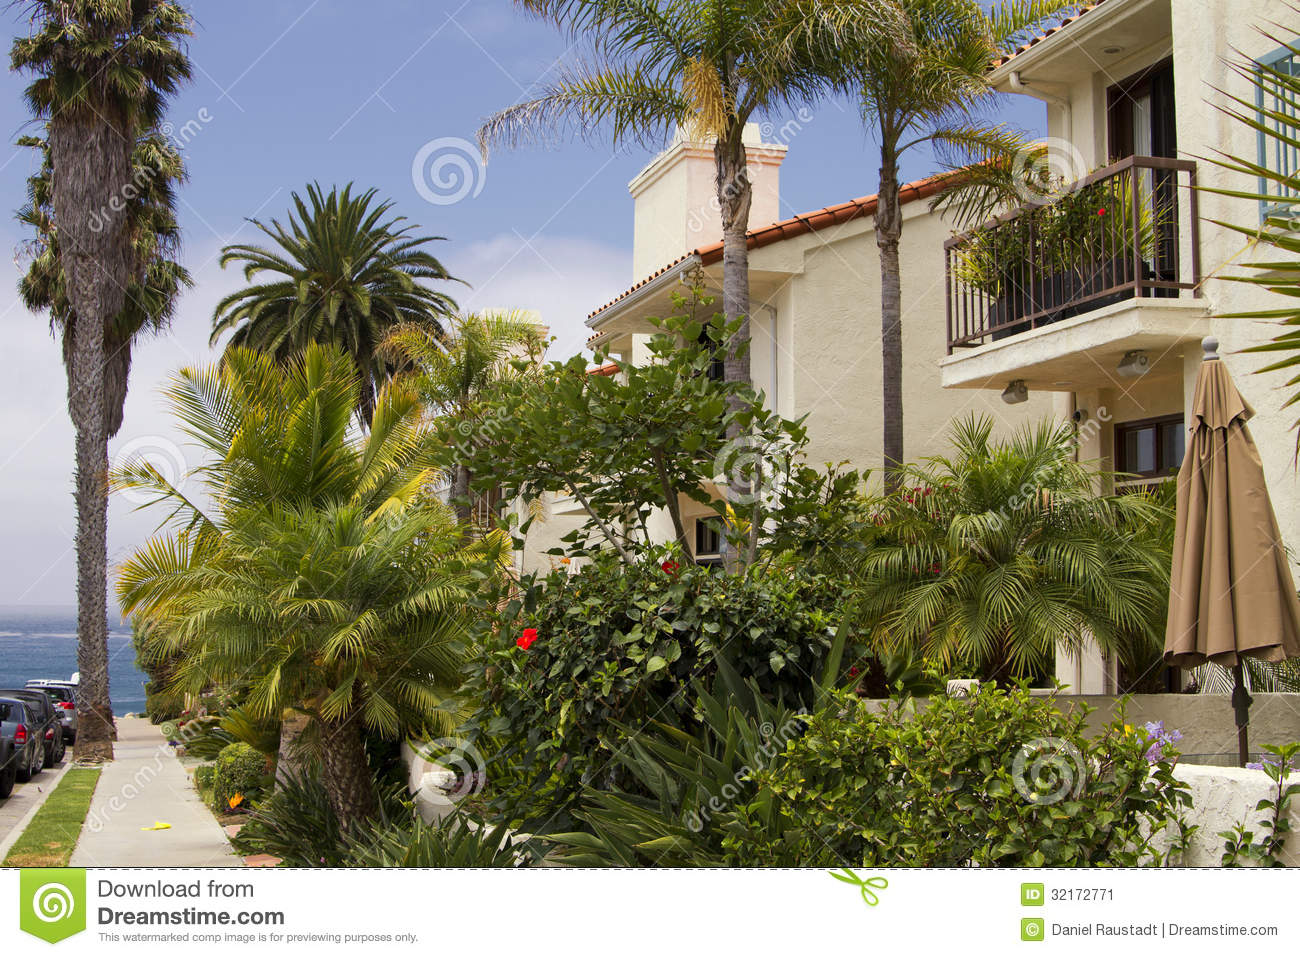 Southern California Ocean Beach Homes Stock Image - Image of